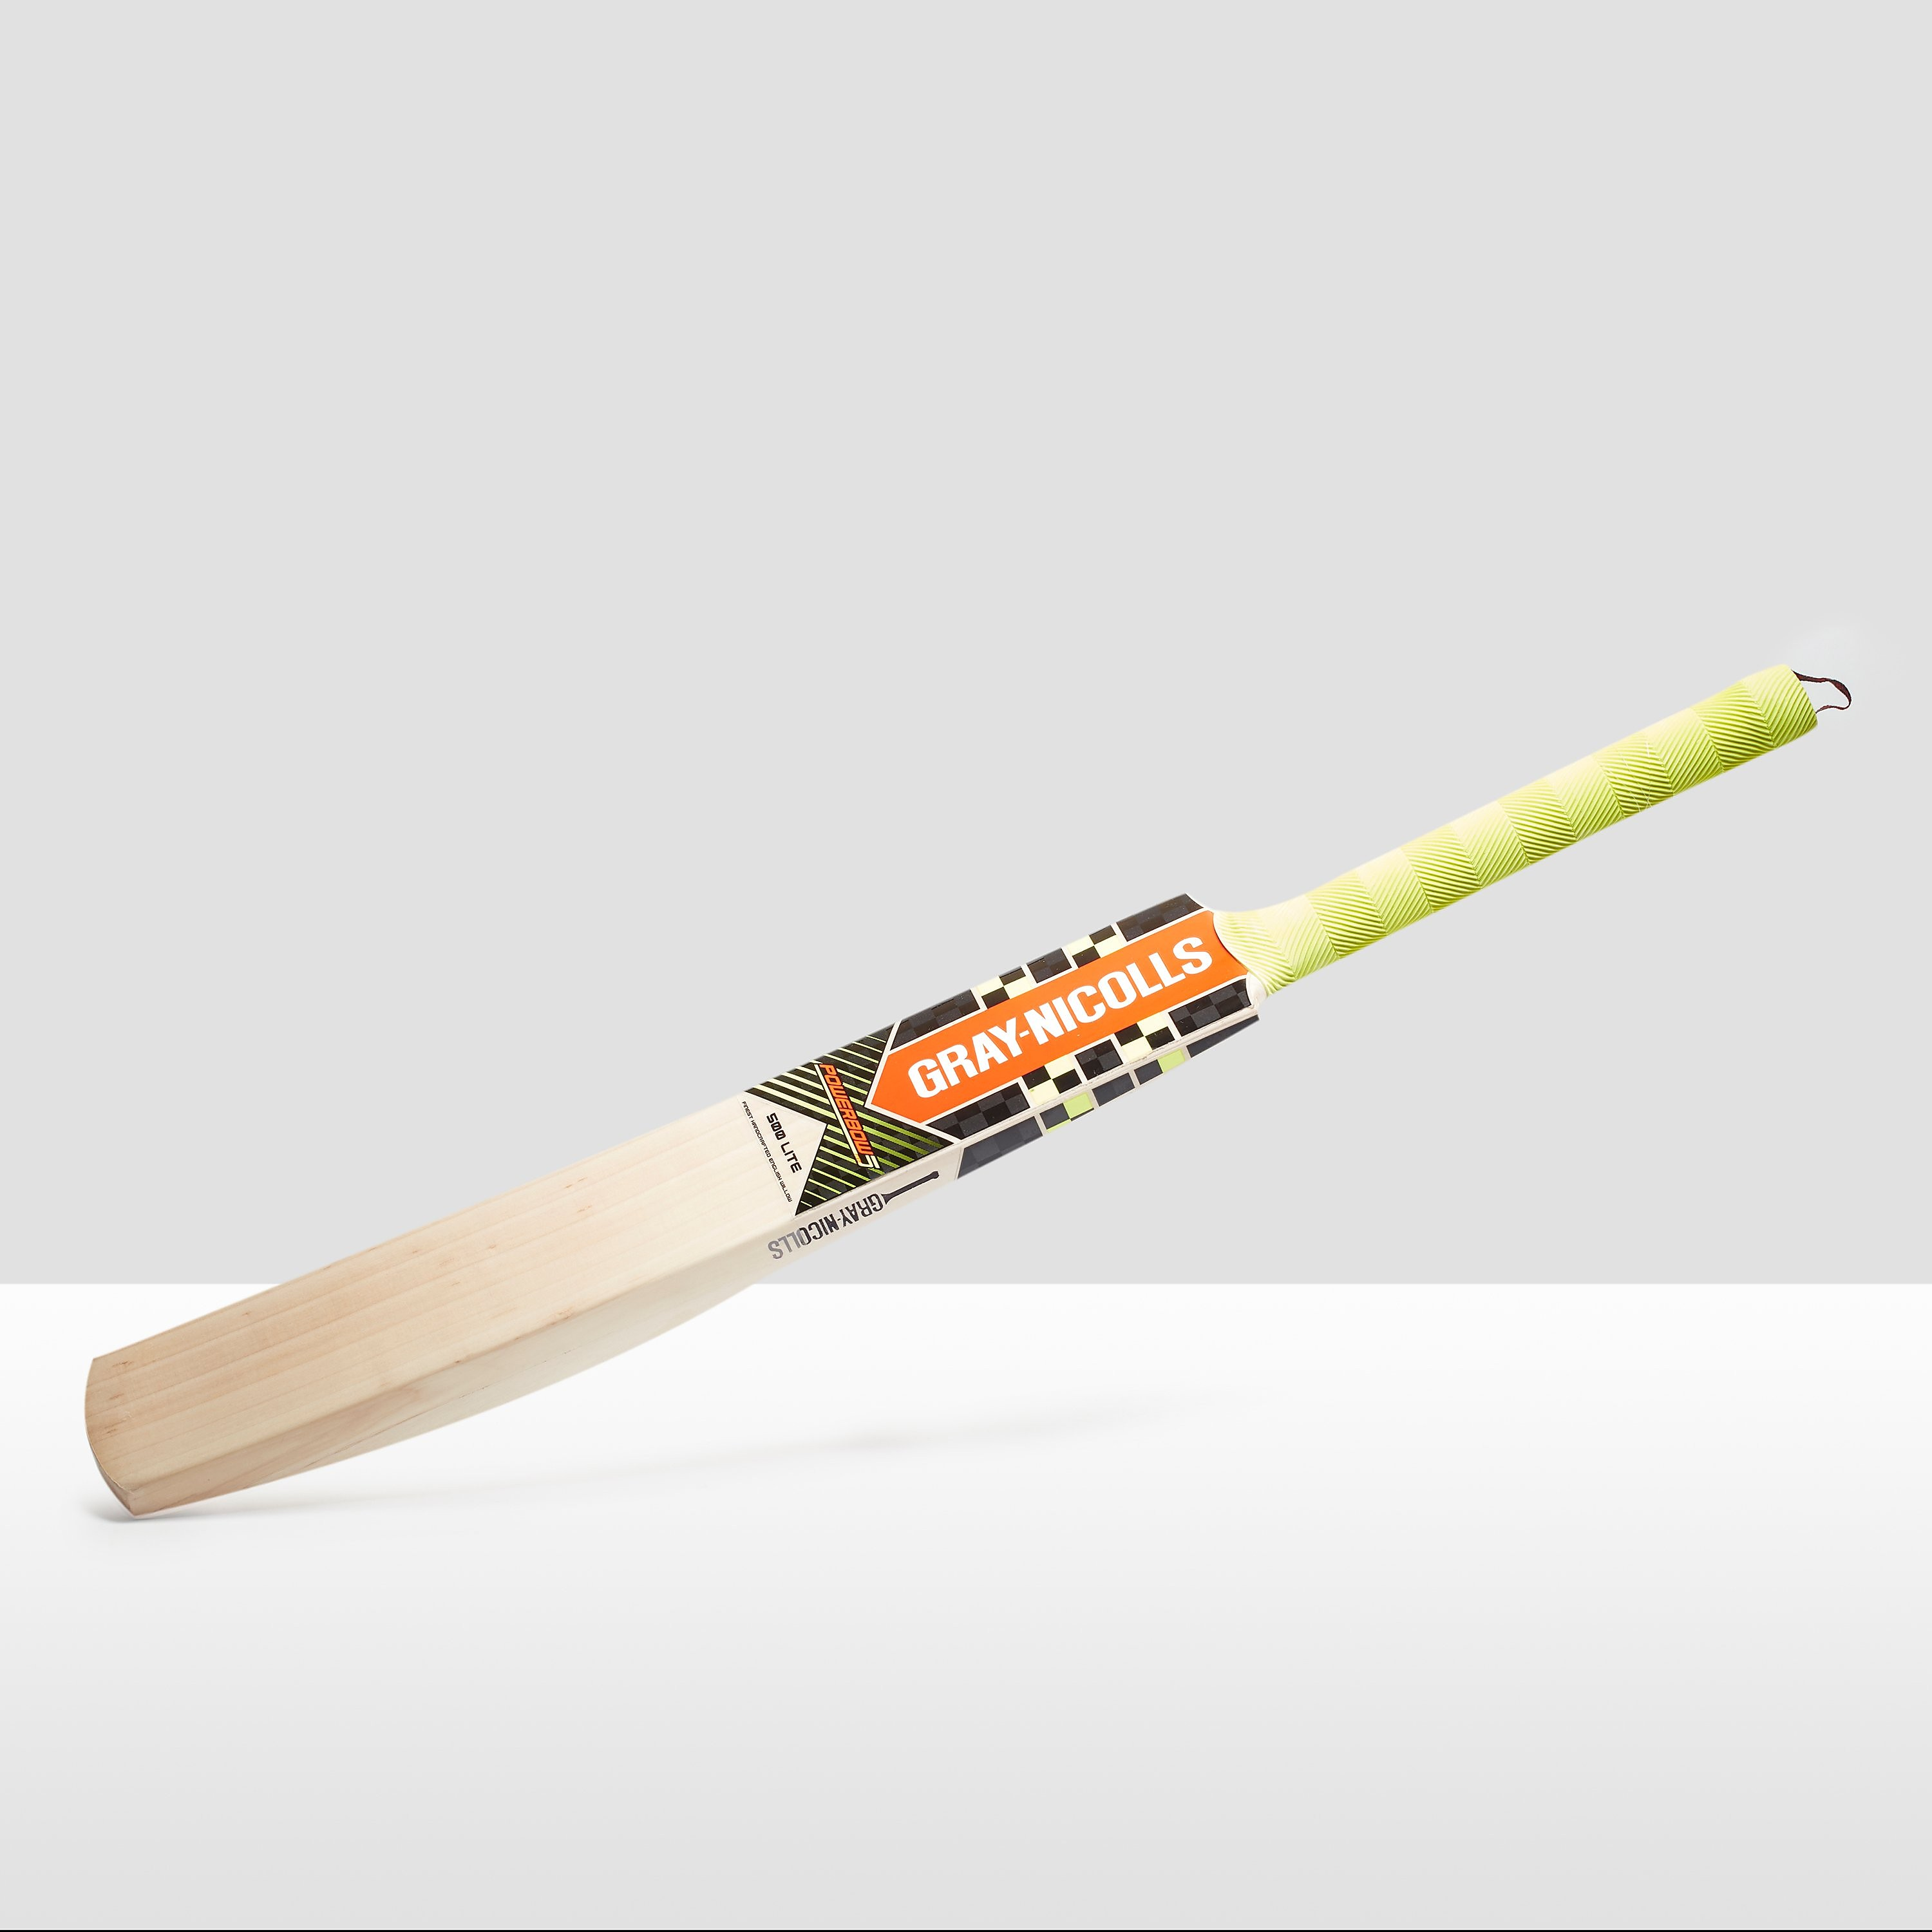 Gray Nicolls POWERBOW 500 LITE Cricket Bat